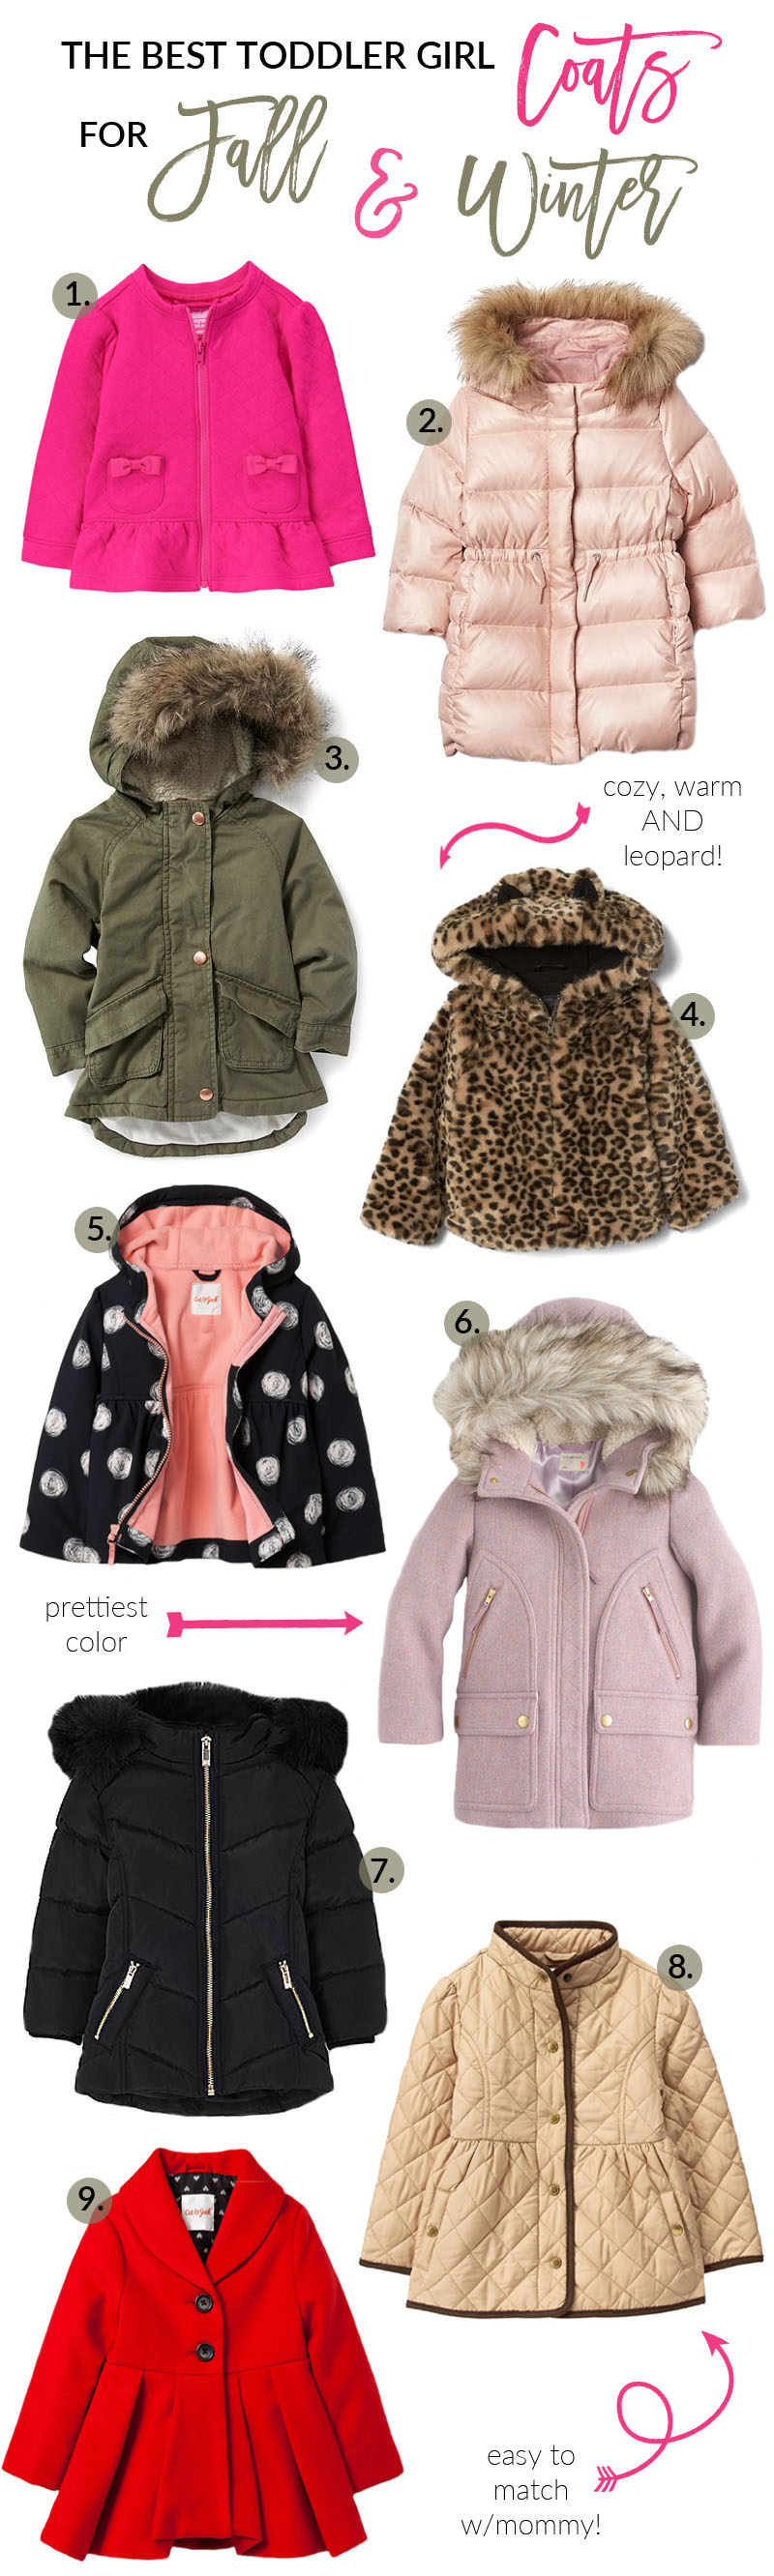 The Best Toddler Coats for Fall & Winter by Utah fashion blogger Sandy A La Mode